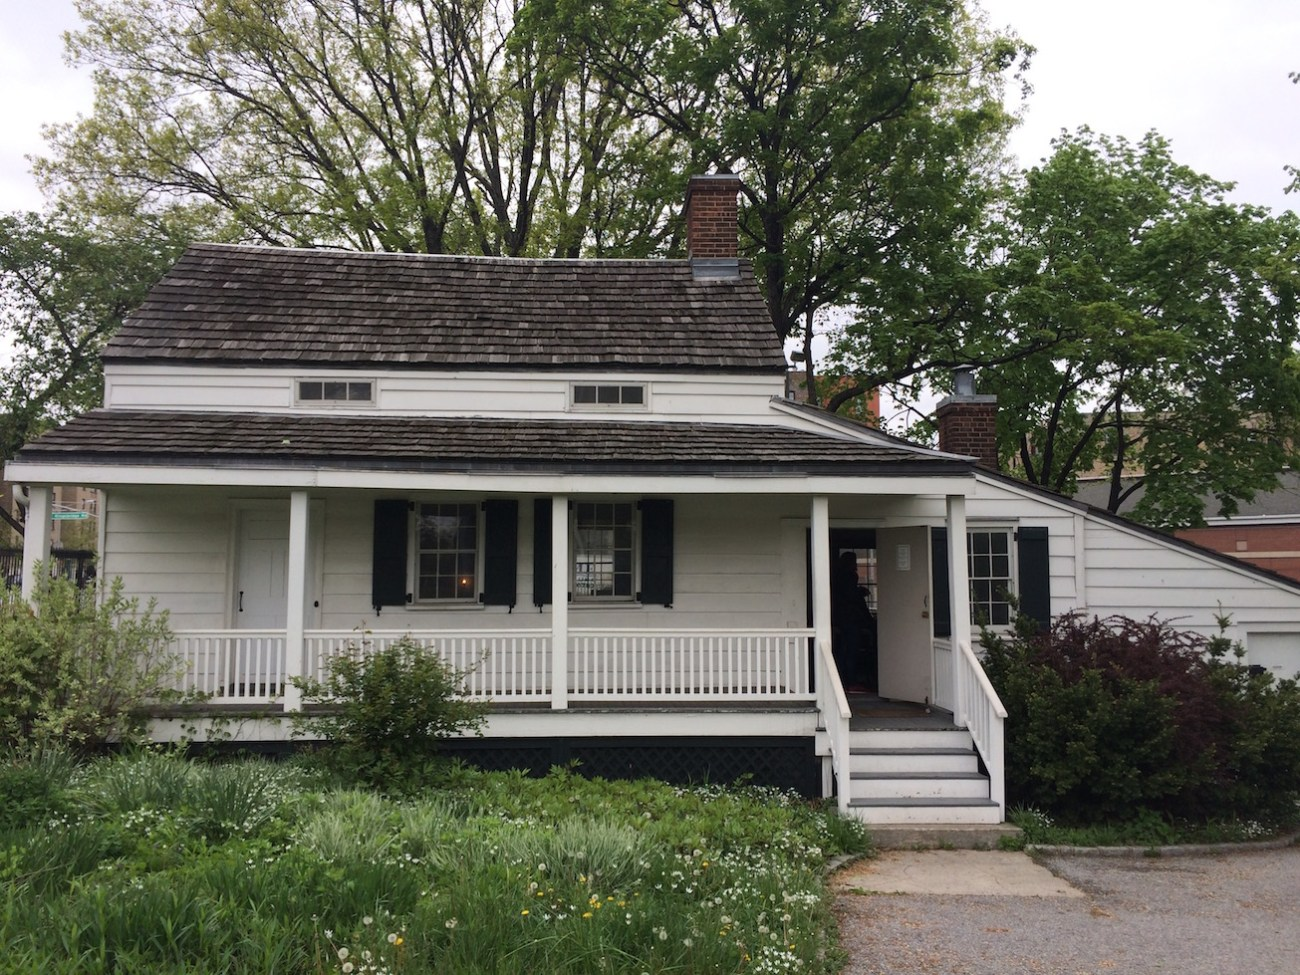 The Edgar Allen Poe Cottage